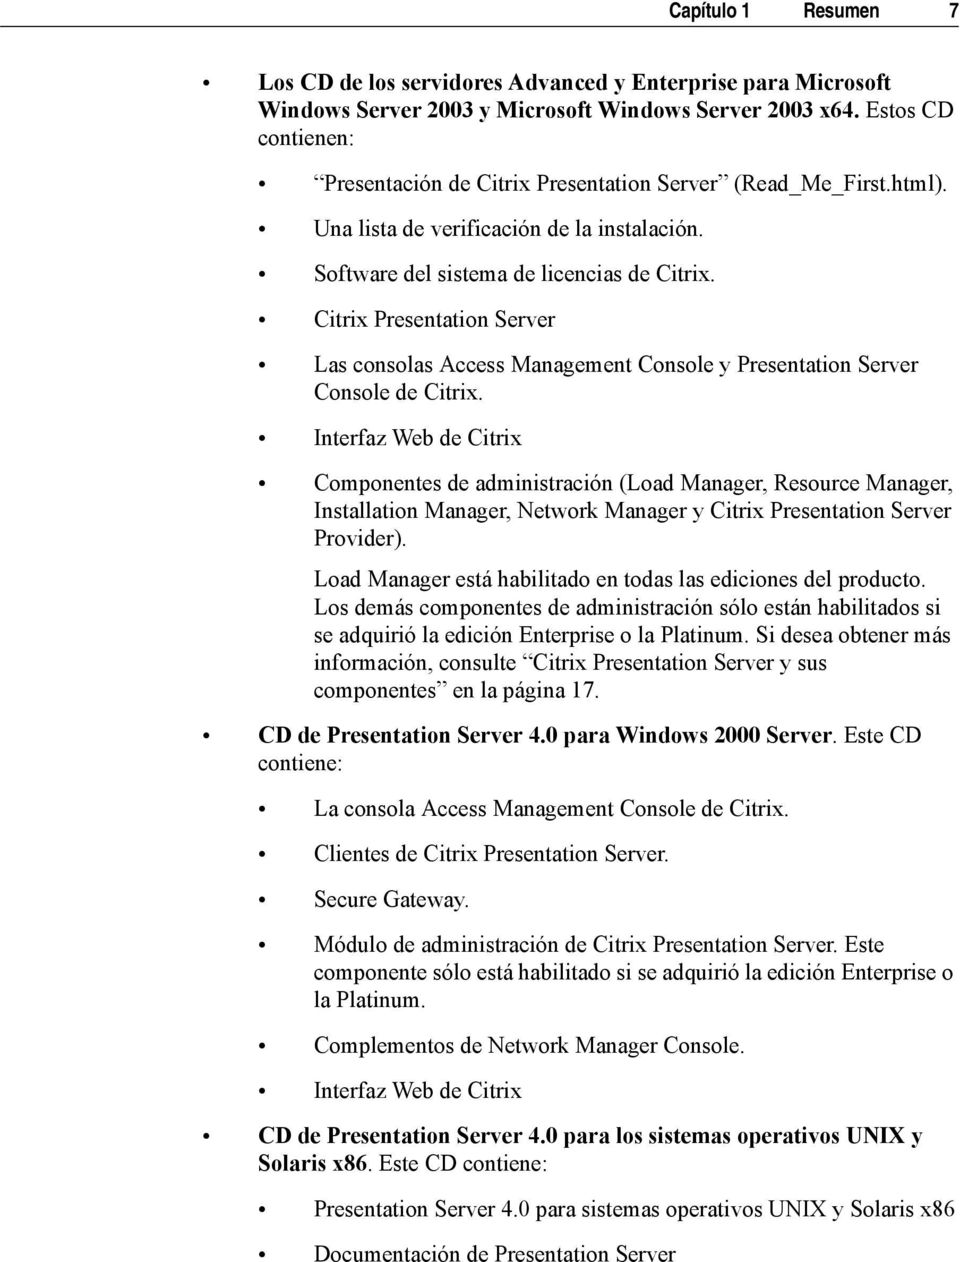 Citrix Presentation Server Las consolas Access Management Console y Presentation Server Console de Citrix.